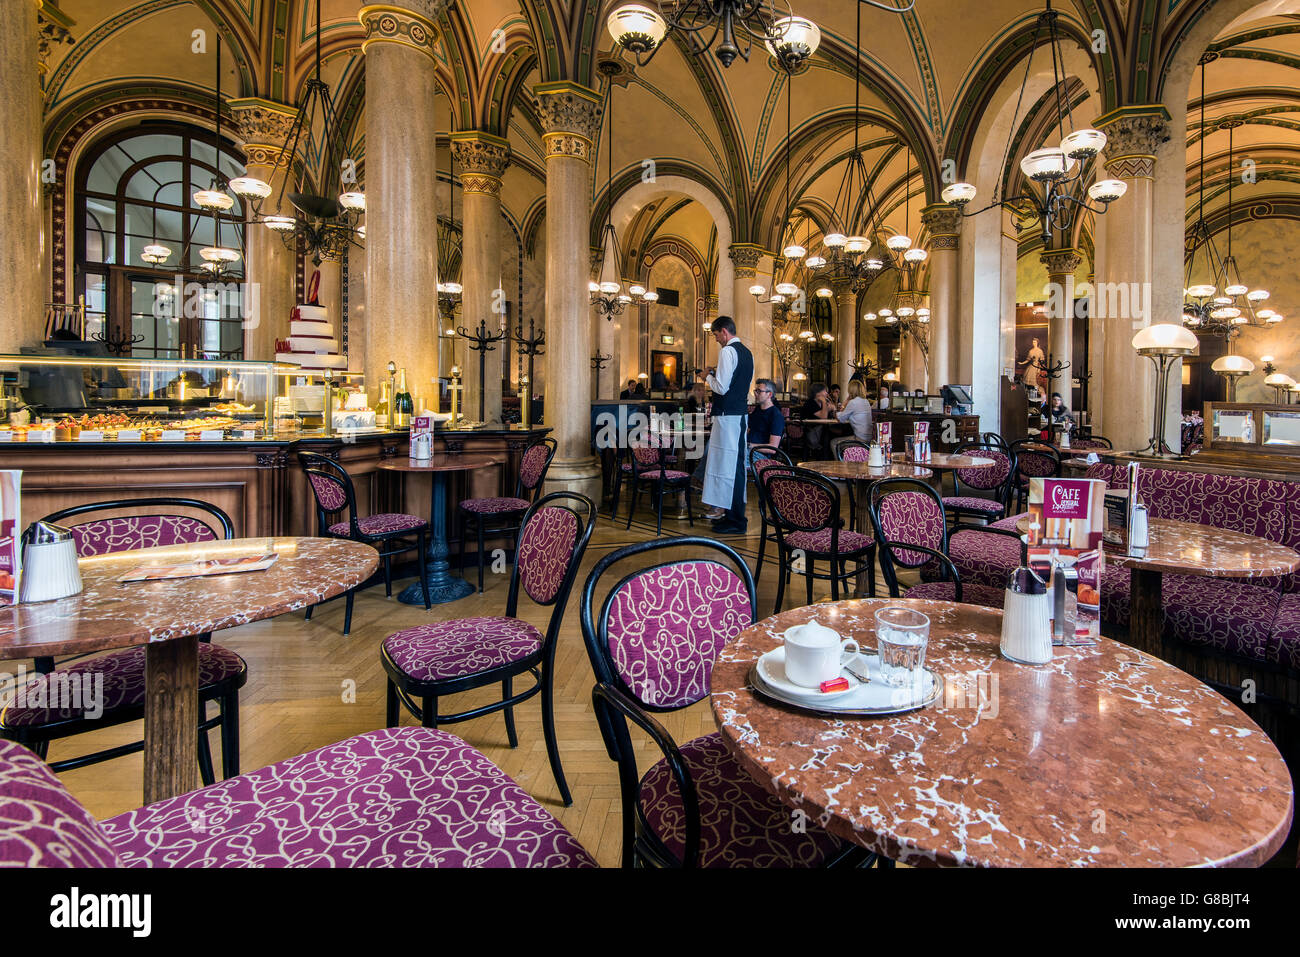 The historic Cafe Central, Vienna, Austria - Stock Image